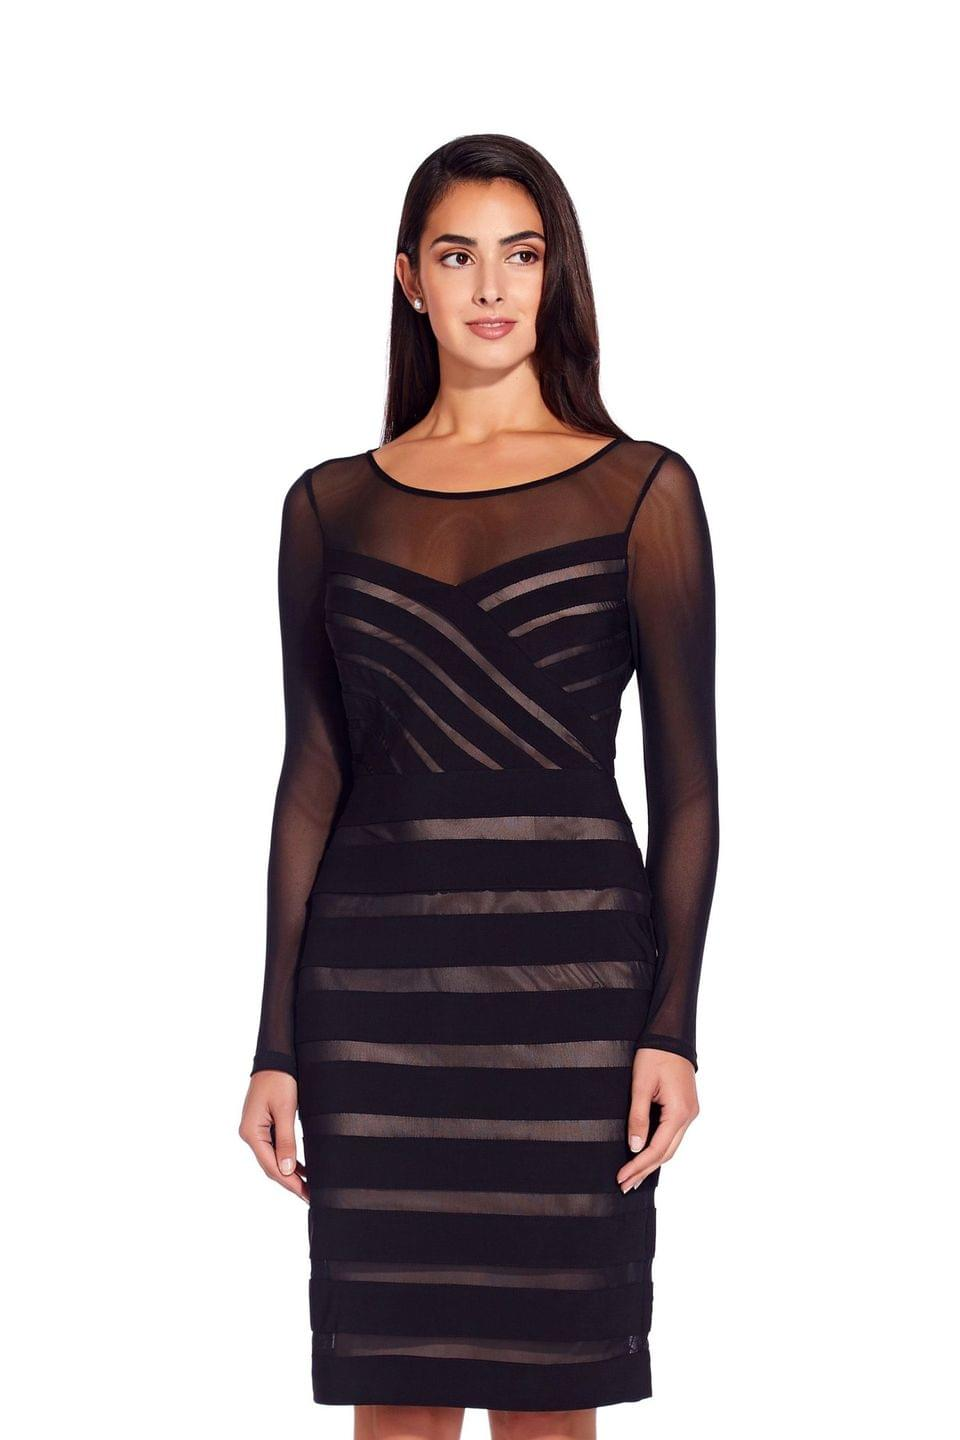 Women's Adrianna Papell Black Illusion Banded Sheath Dress